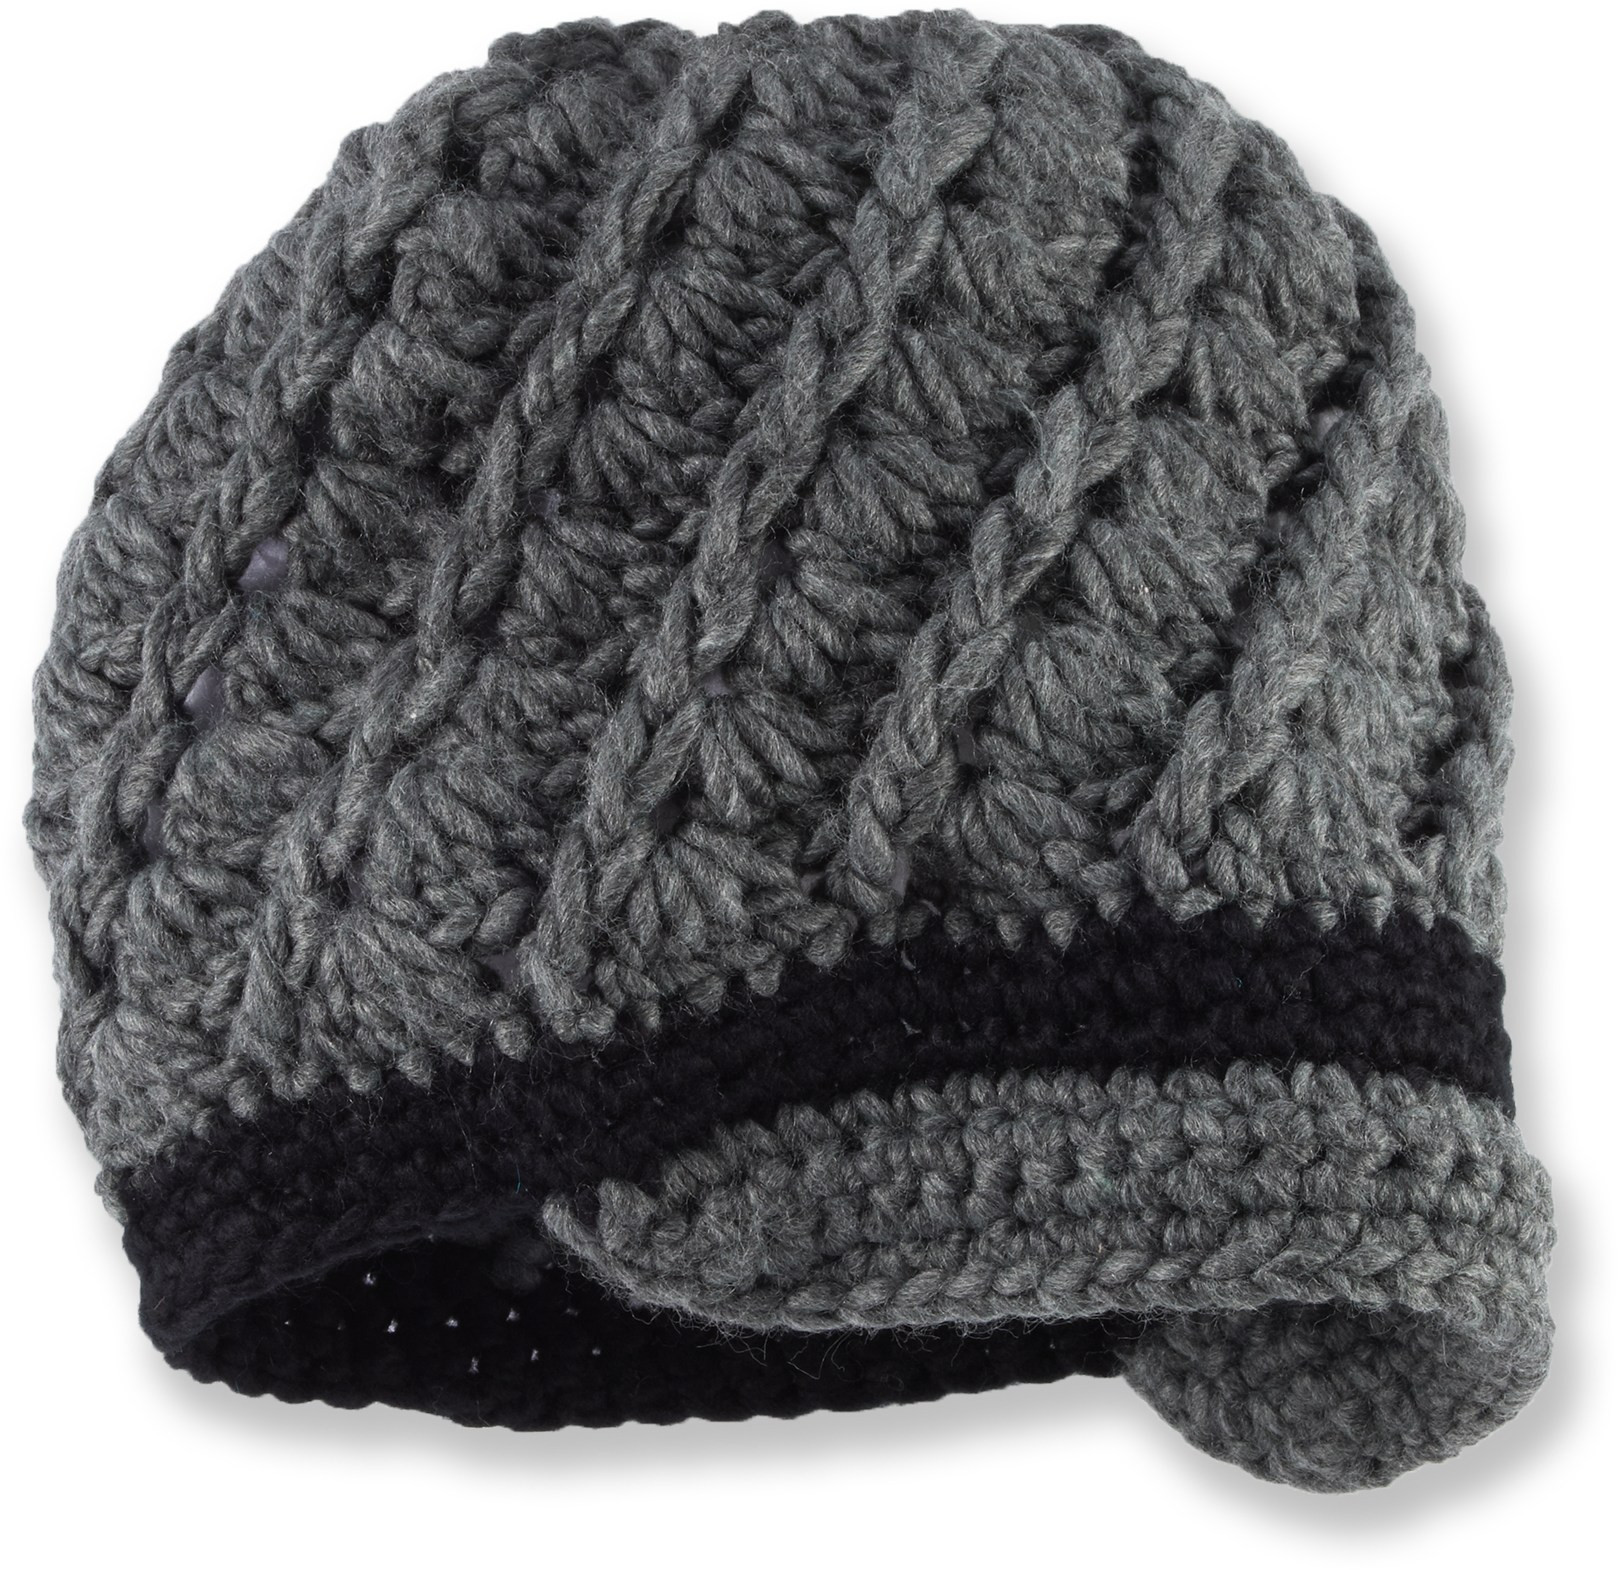 Lovely Hat Crochet Stitches for Hats Of Lovely 46 Models Crochet Stitches for Hats